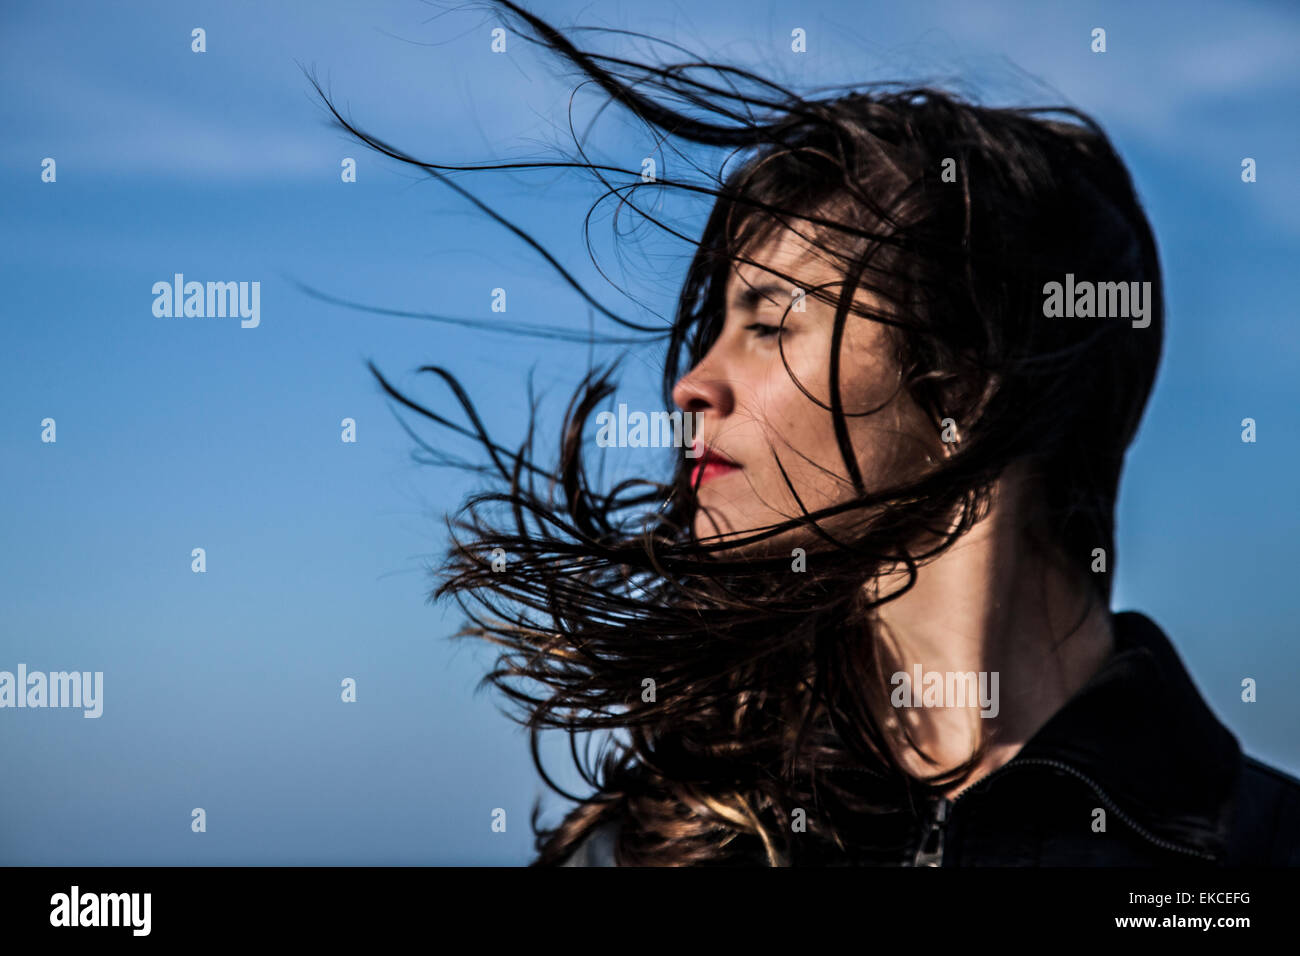 Young woman looking sideways with hair blowing in the wind Stock Photo